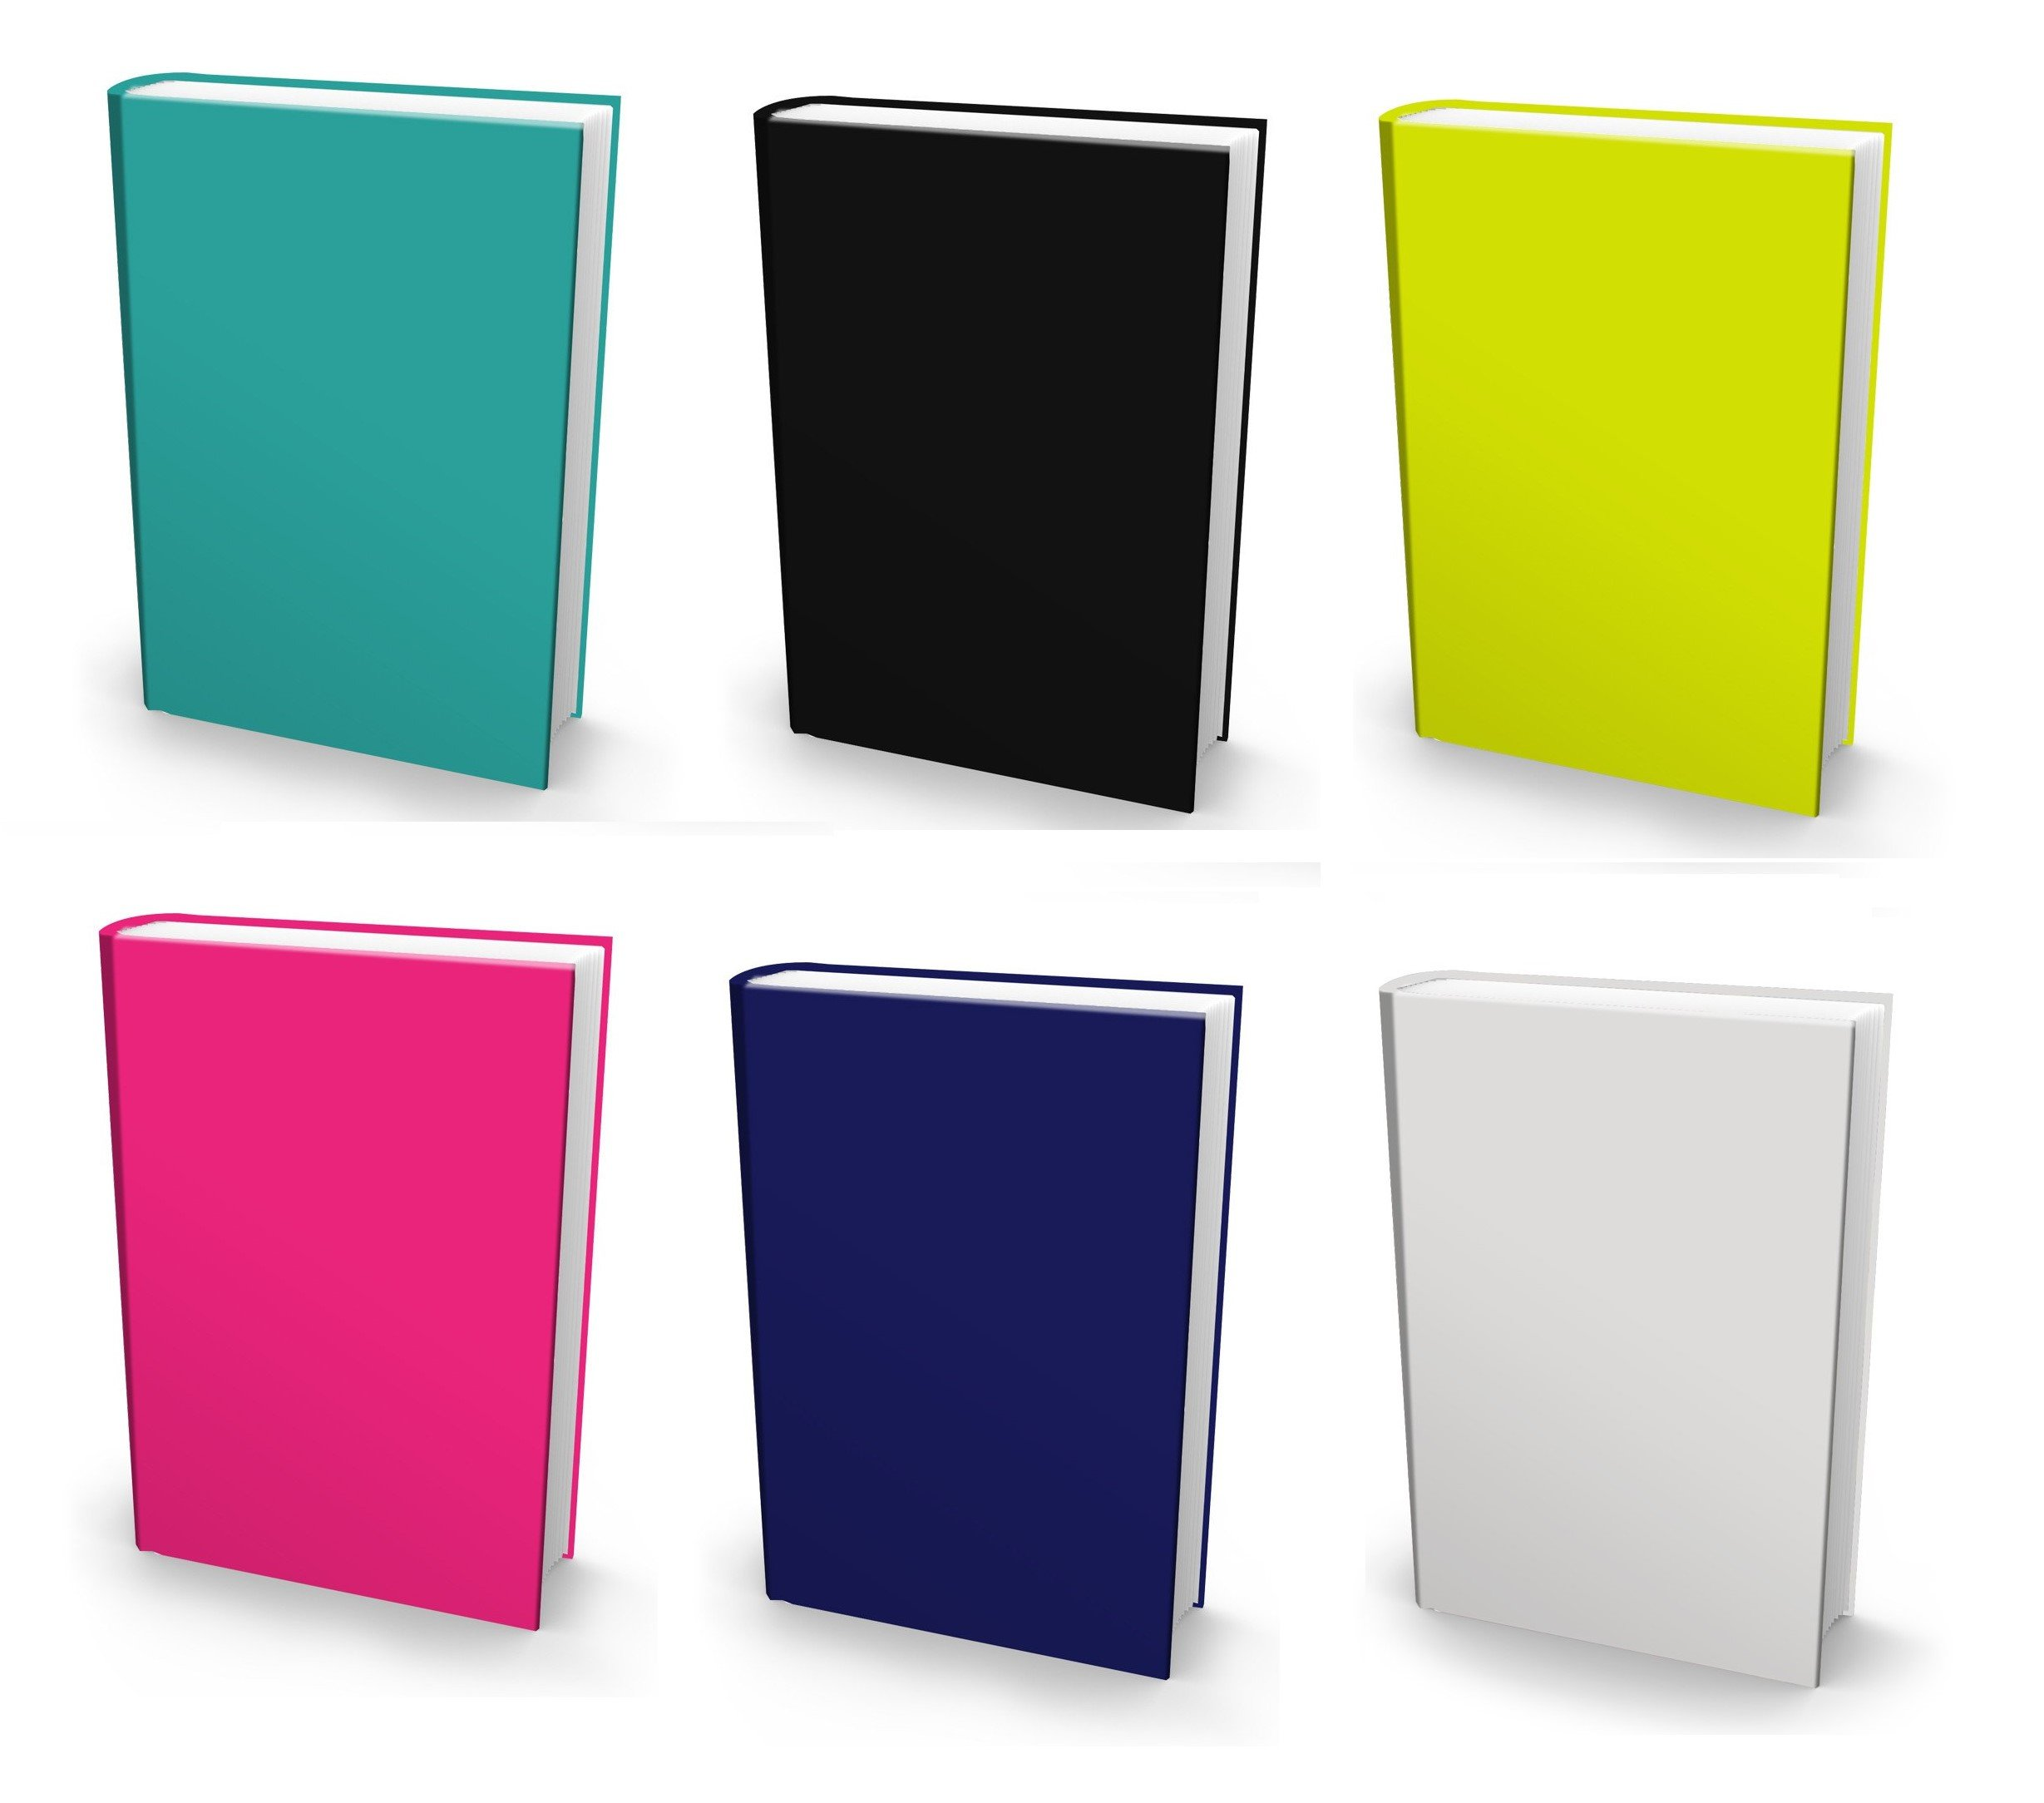 Book Sox NEW 6 Solids 2018 Stretchable Book Covers -Durable Hardcover Protectors For 9''x11'' Jumbo Textbooks -Washable & Reusable Non-Adhesive Nylon Fabric School Book Jackets In Many Colors & Designs by Book Sox